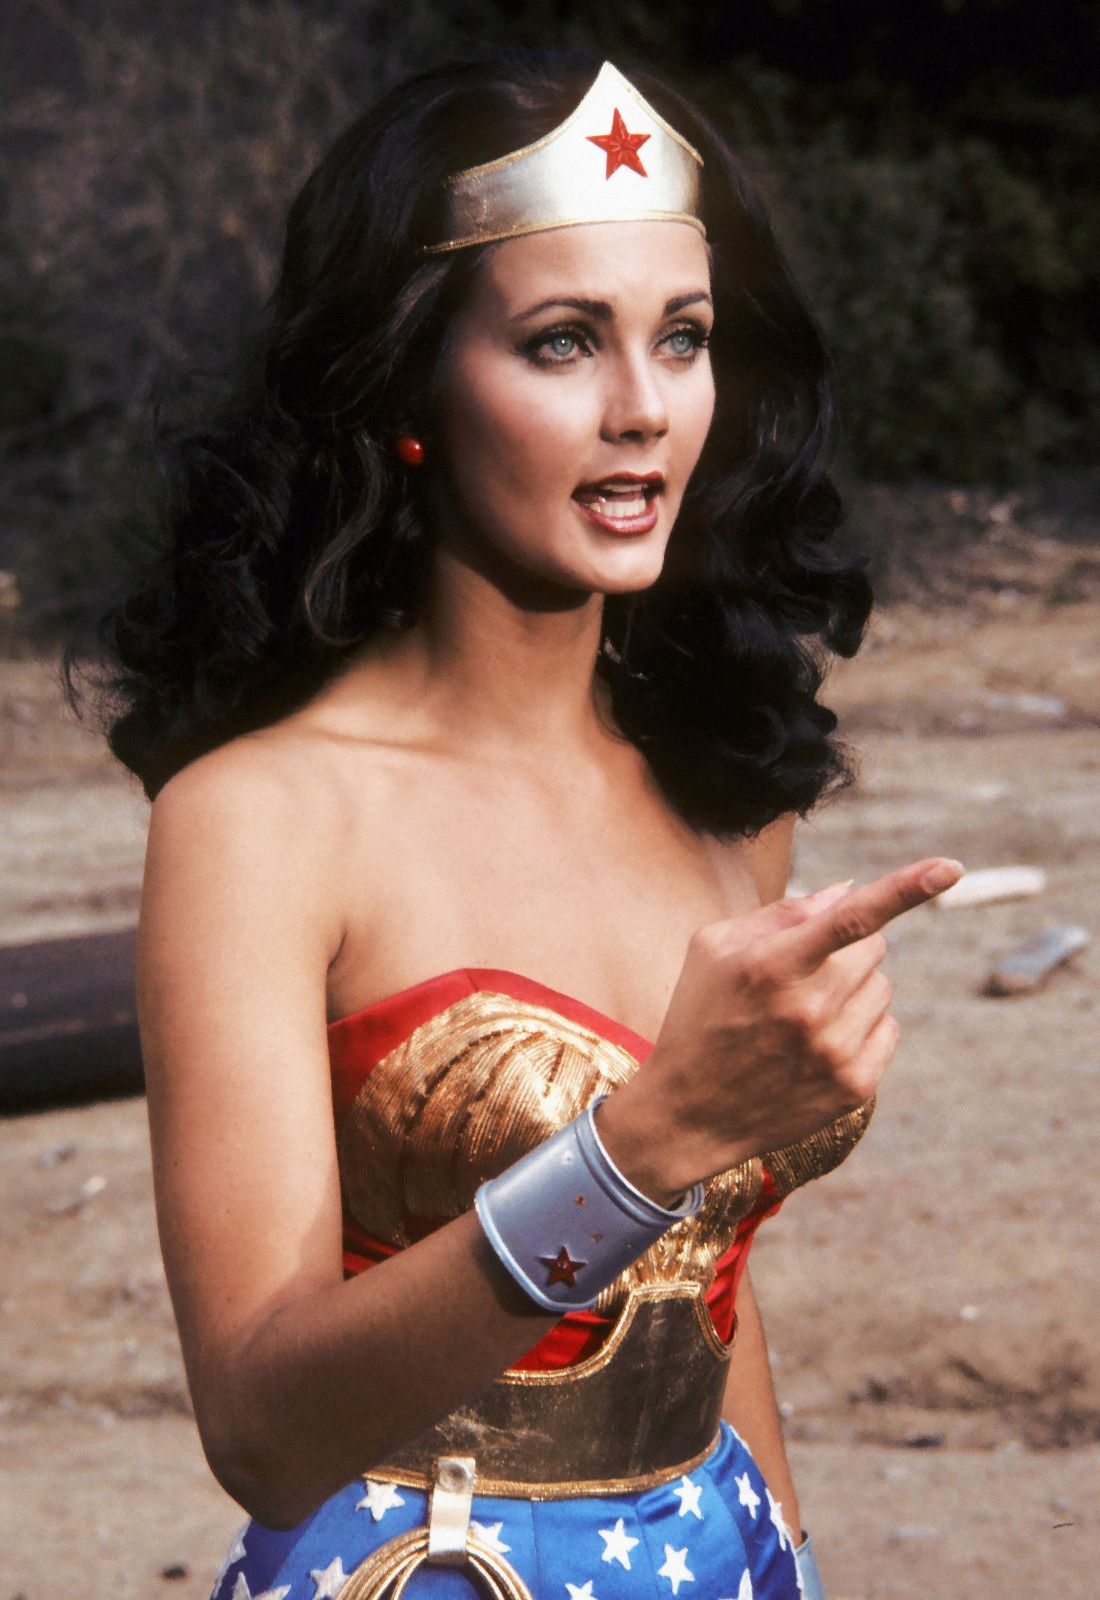 Lynda Carter As Wonder Woman  Promotional By Wbtv 1979  Movies, Music  Wonder Woman, Lynda Carter, Superhero-2596